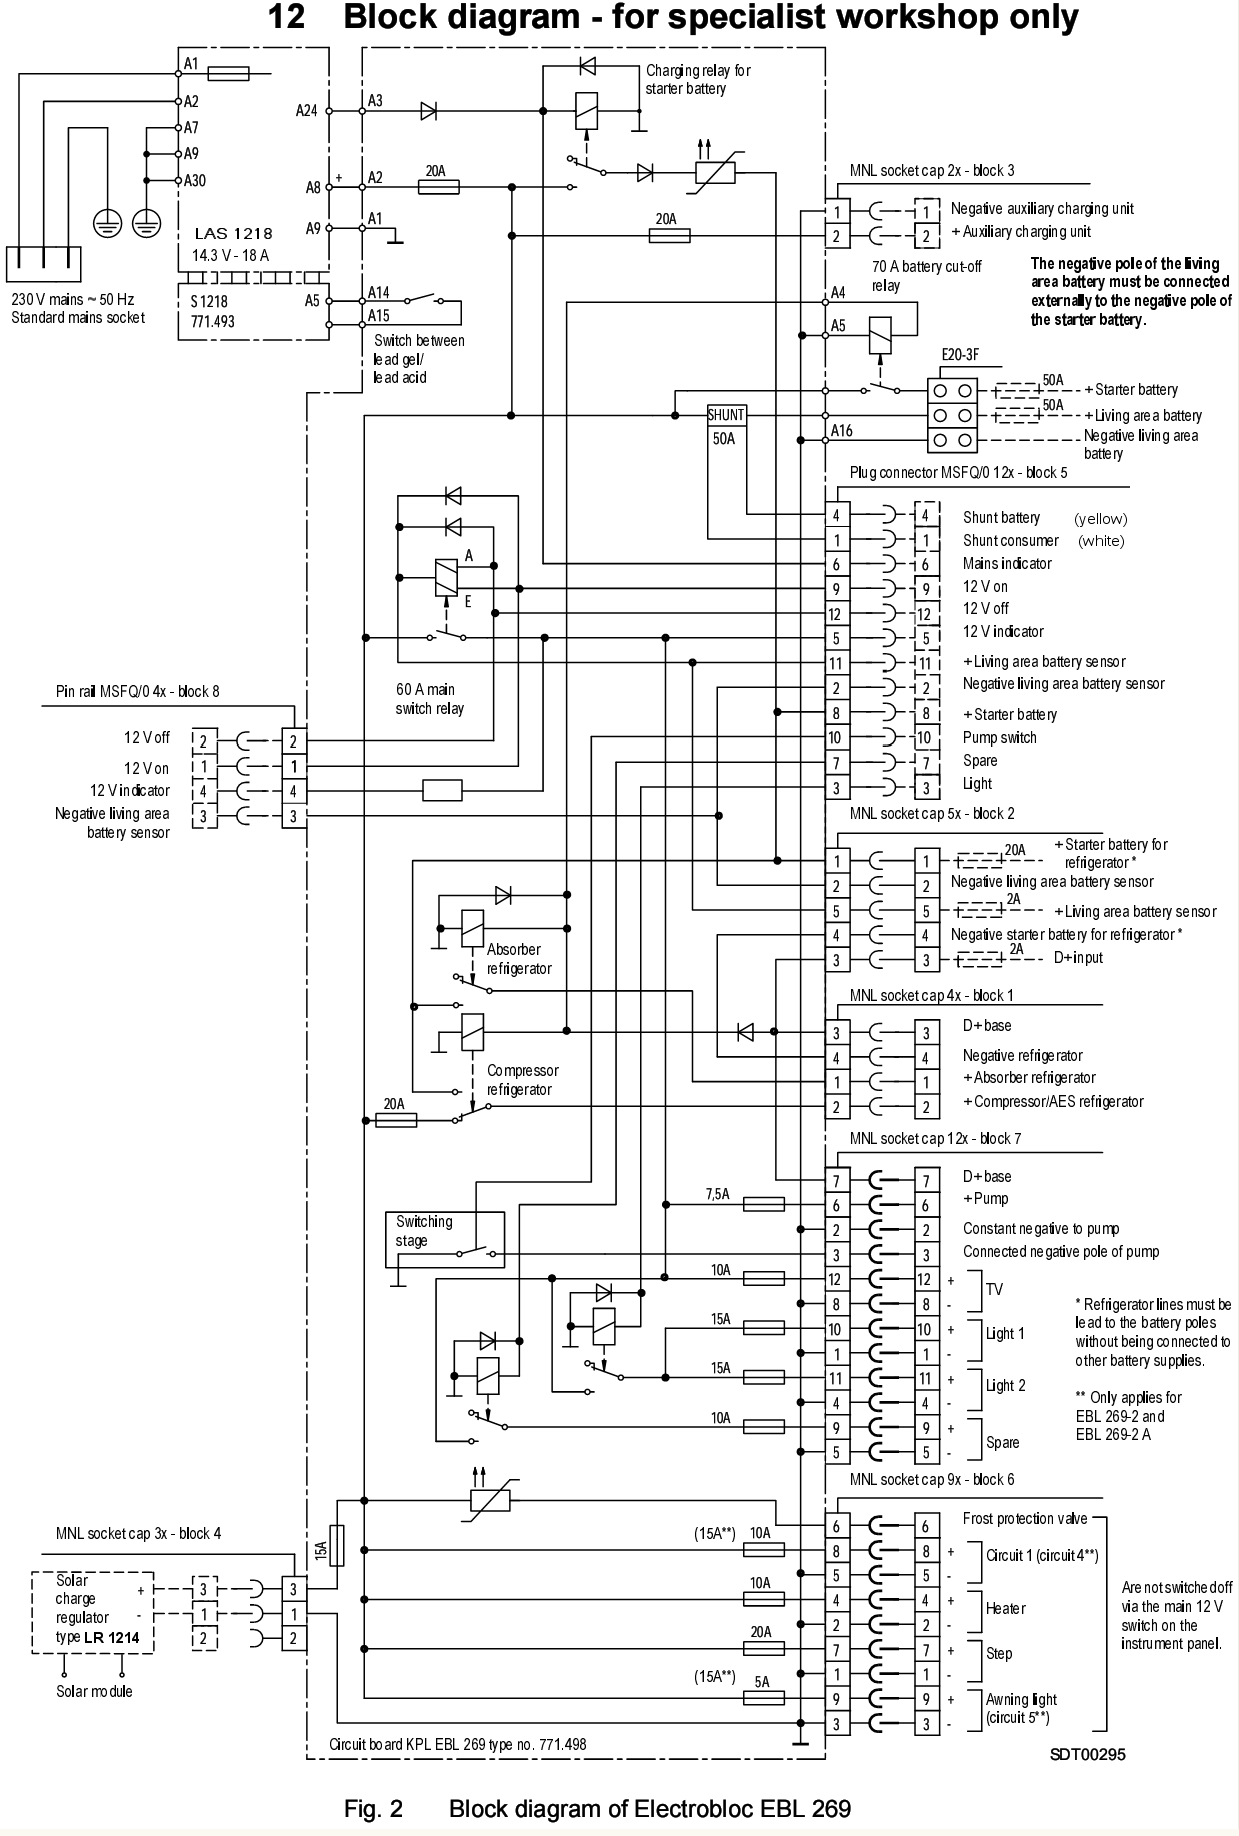 home cable wiring diagram with 12v Electrics on 2123 Electric Range Wiring in addition Wiring Diagram Usb Hub in addition Pc To Tv additionally 12V electrics as well Cat 6 Way Blade Wiring Diagram.